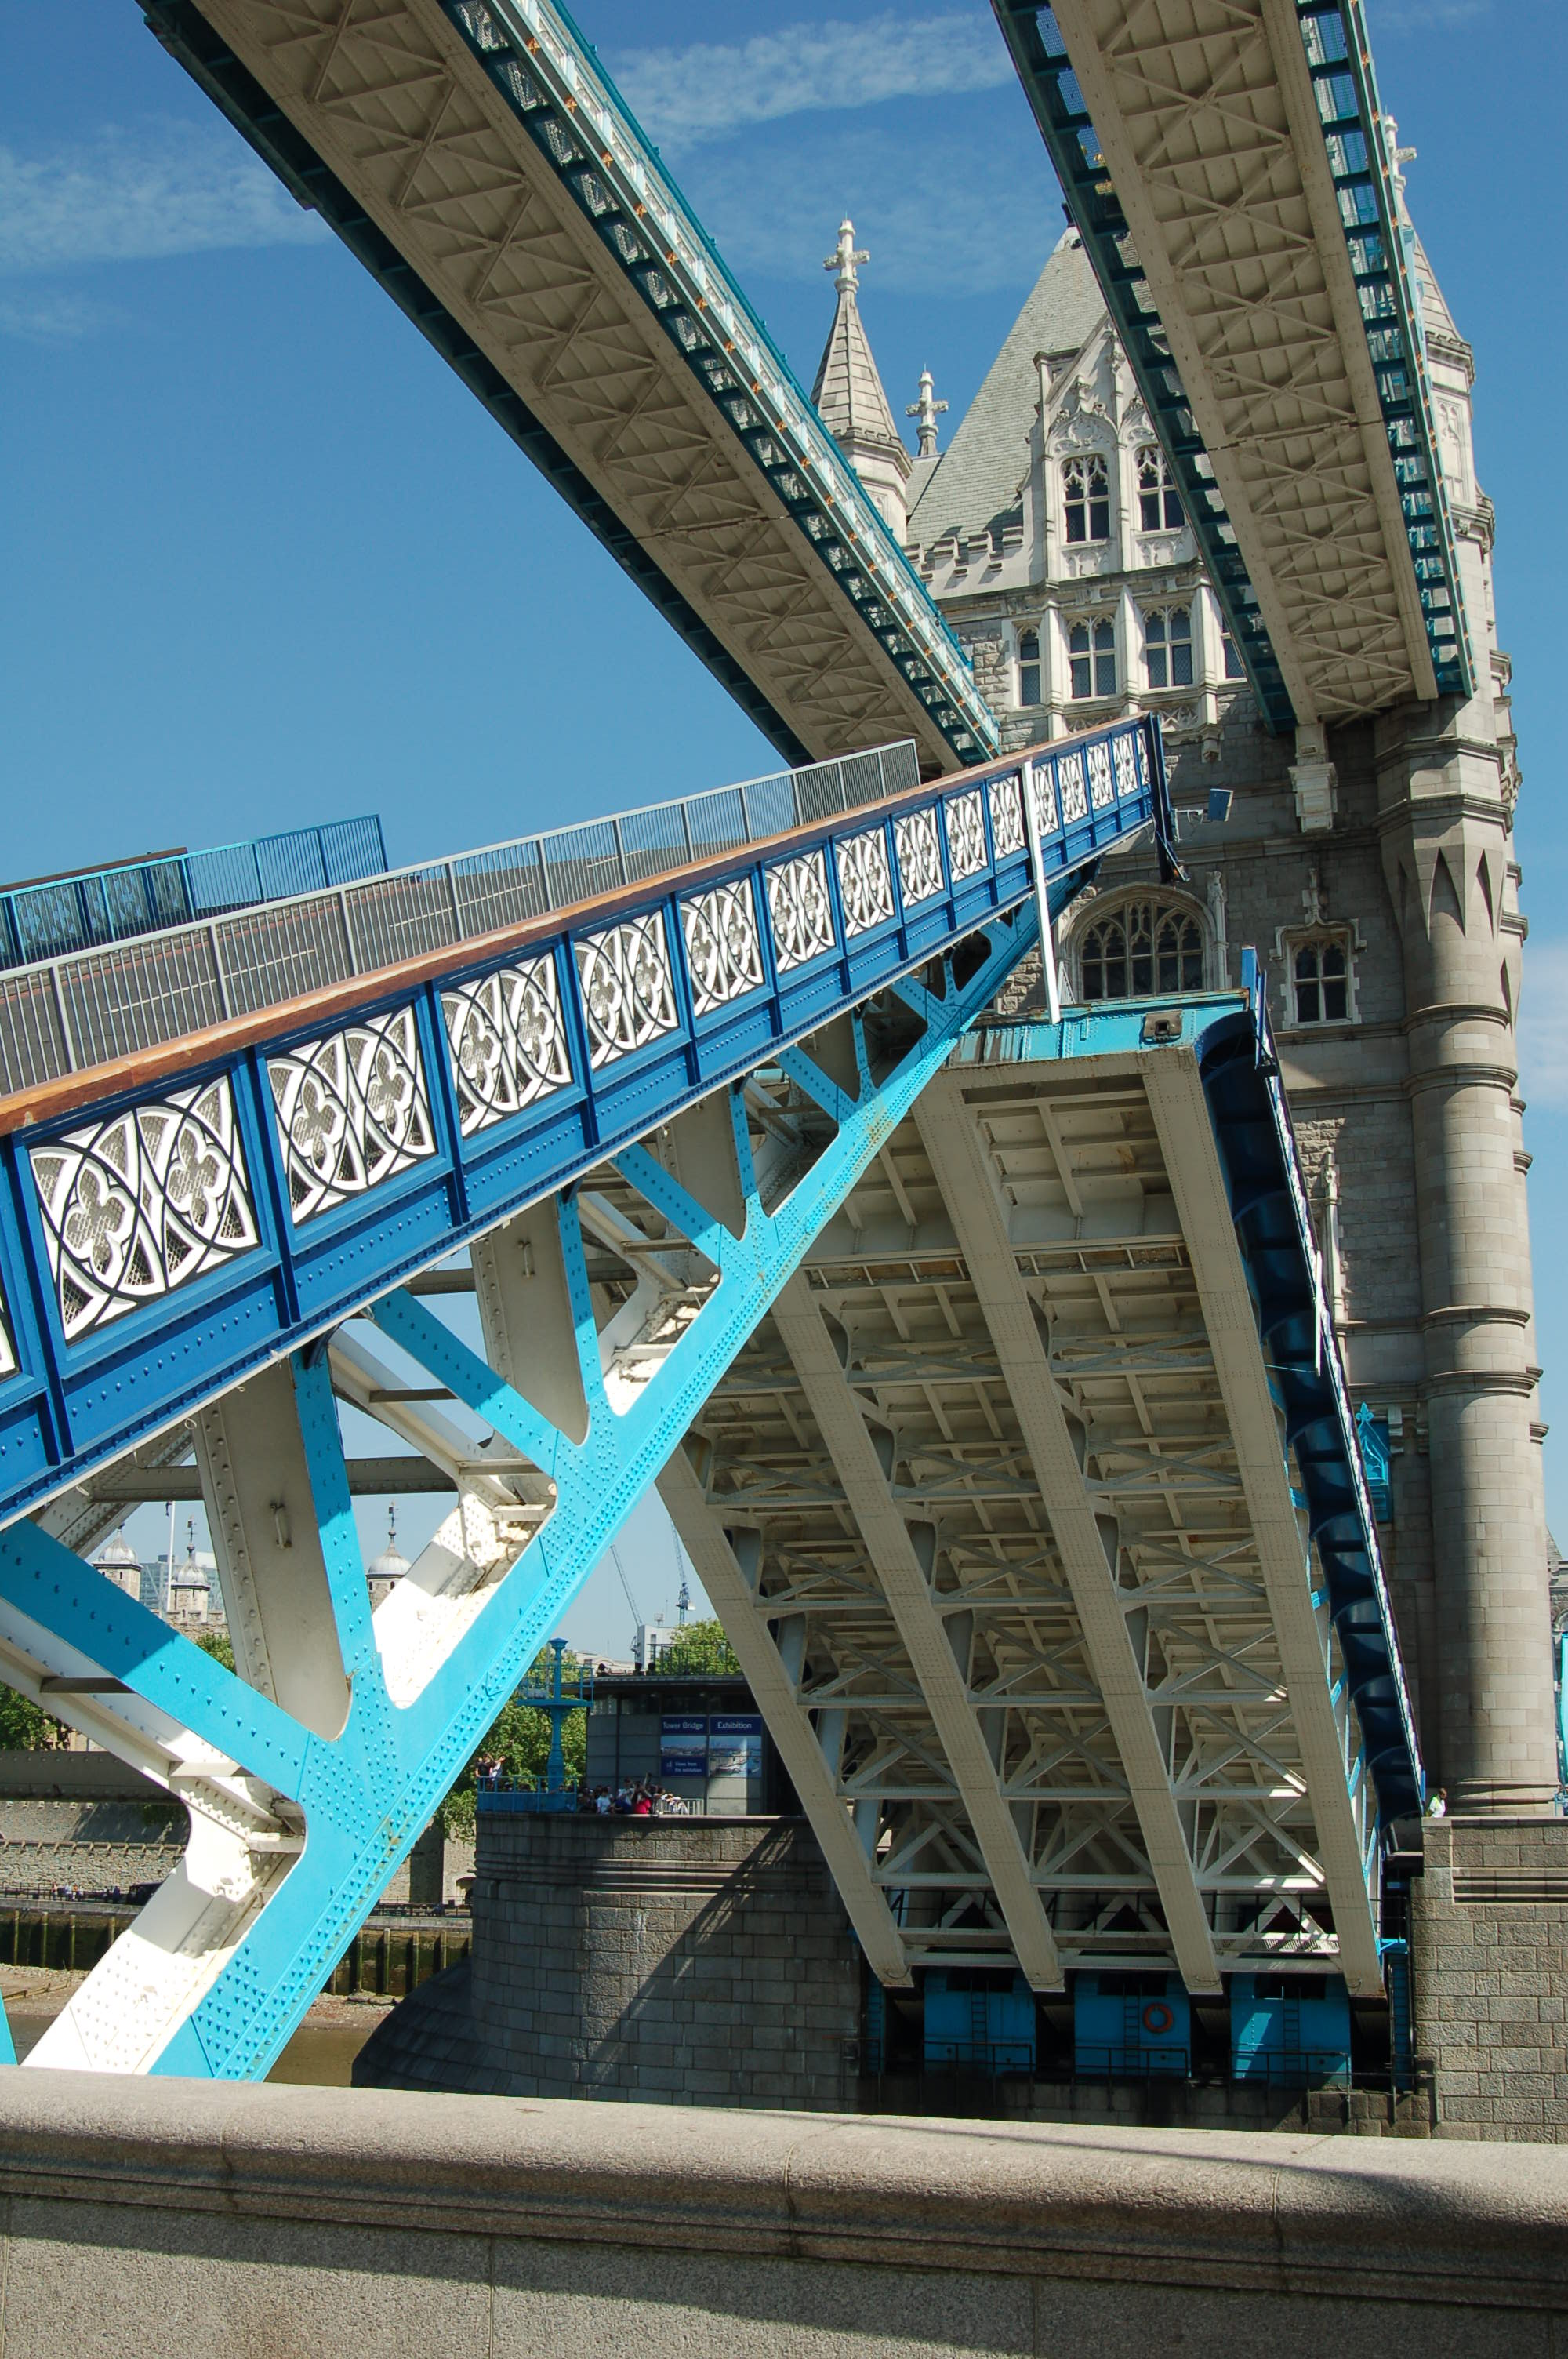 Detail of the Tower Bridge Opening